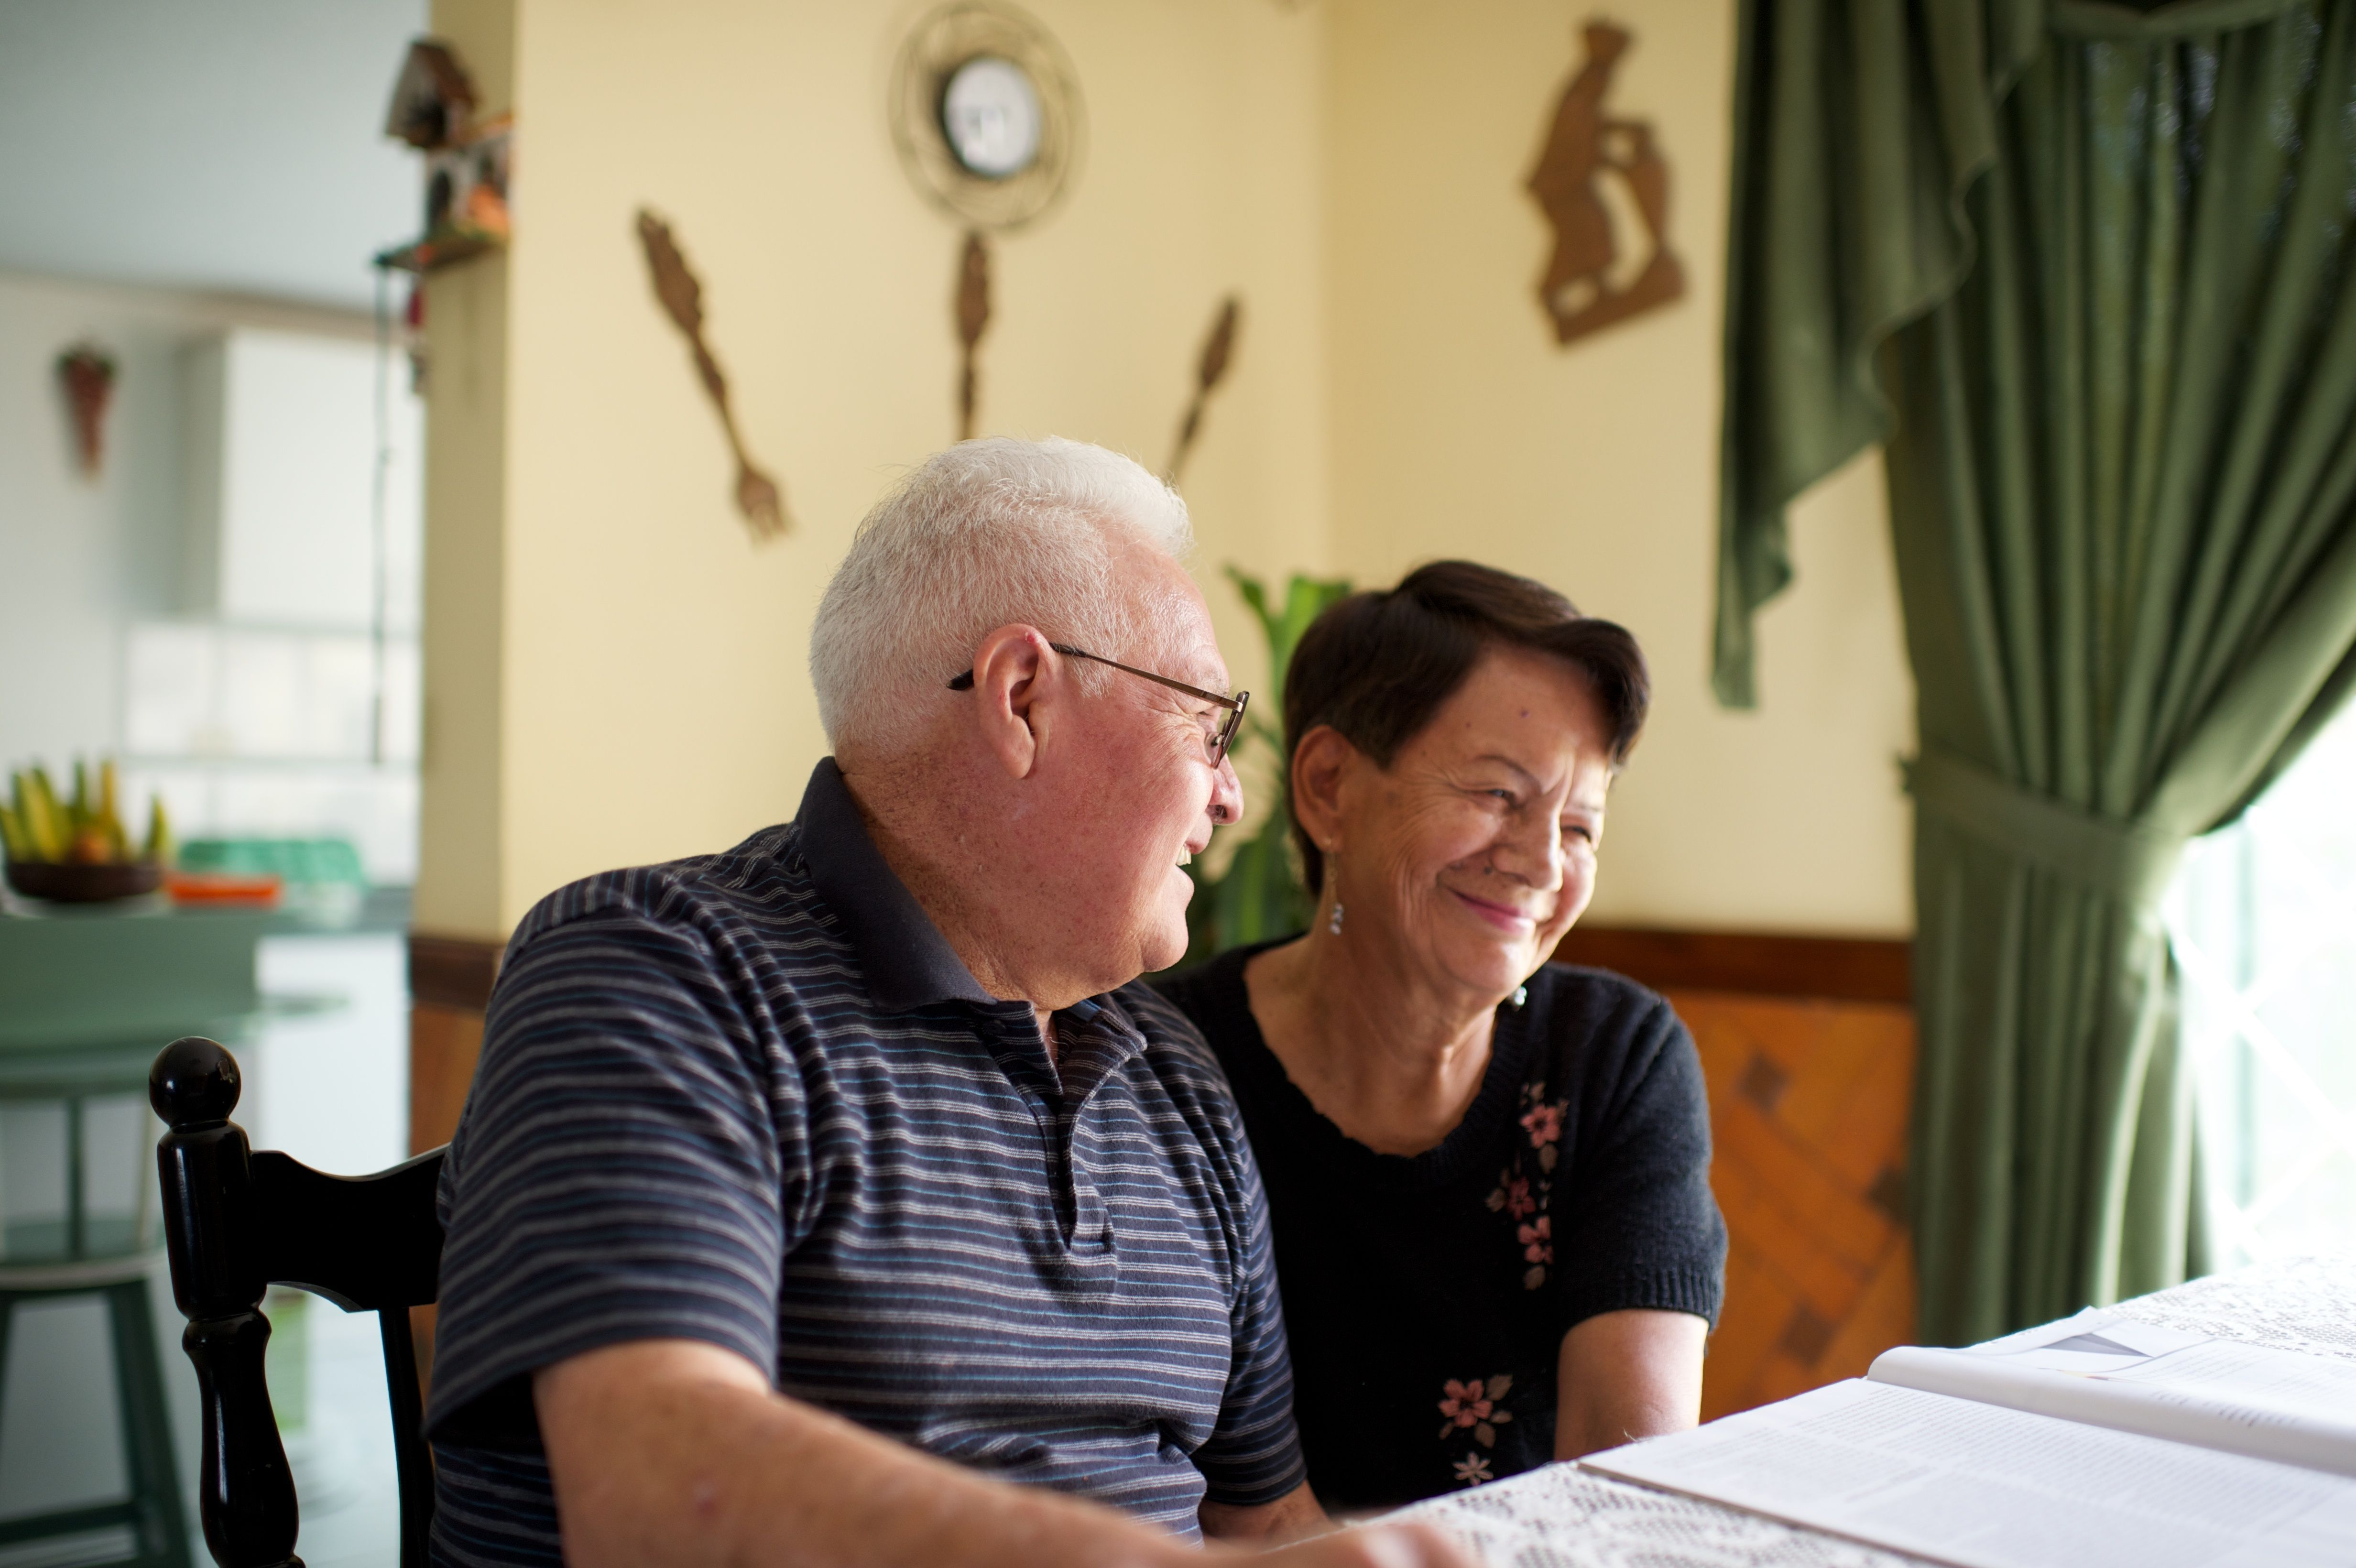 An elderly couple sits in chairs at their house and laughs together.